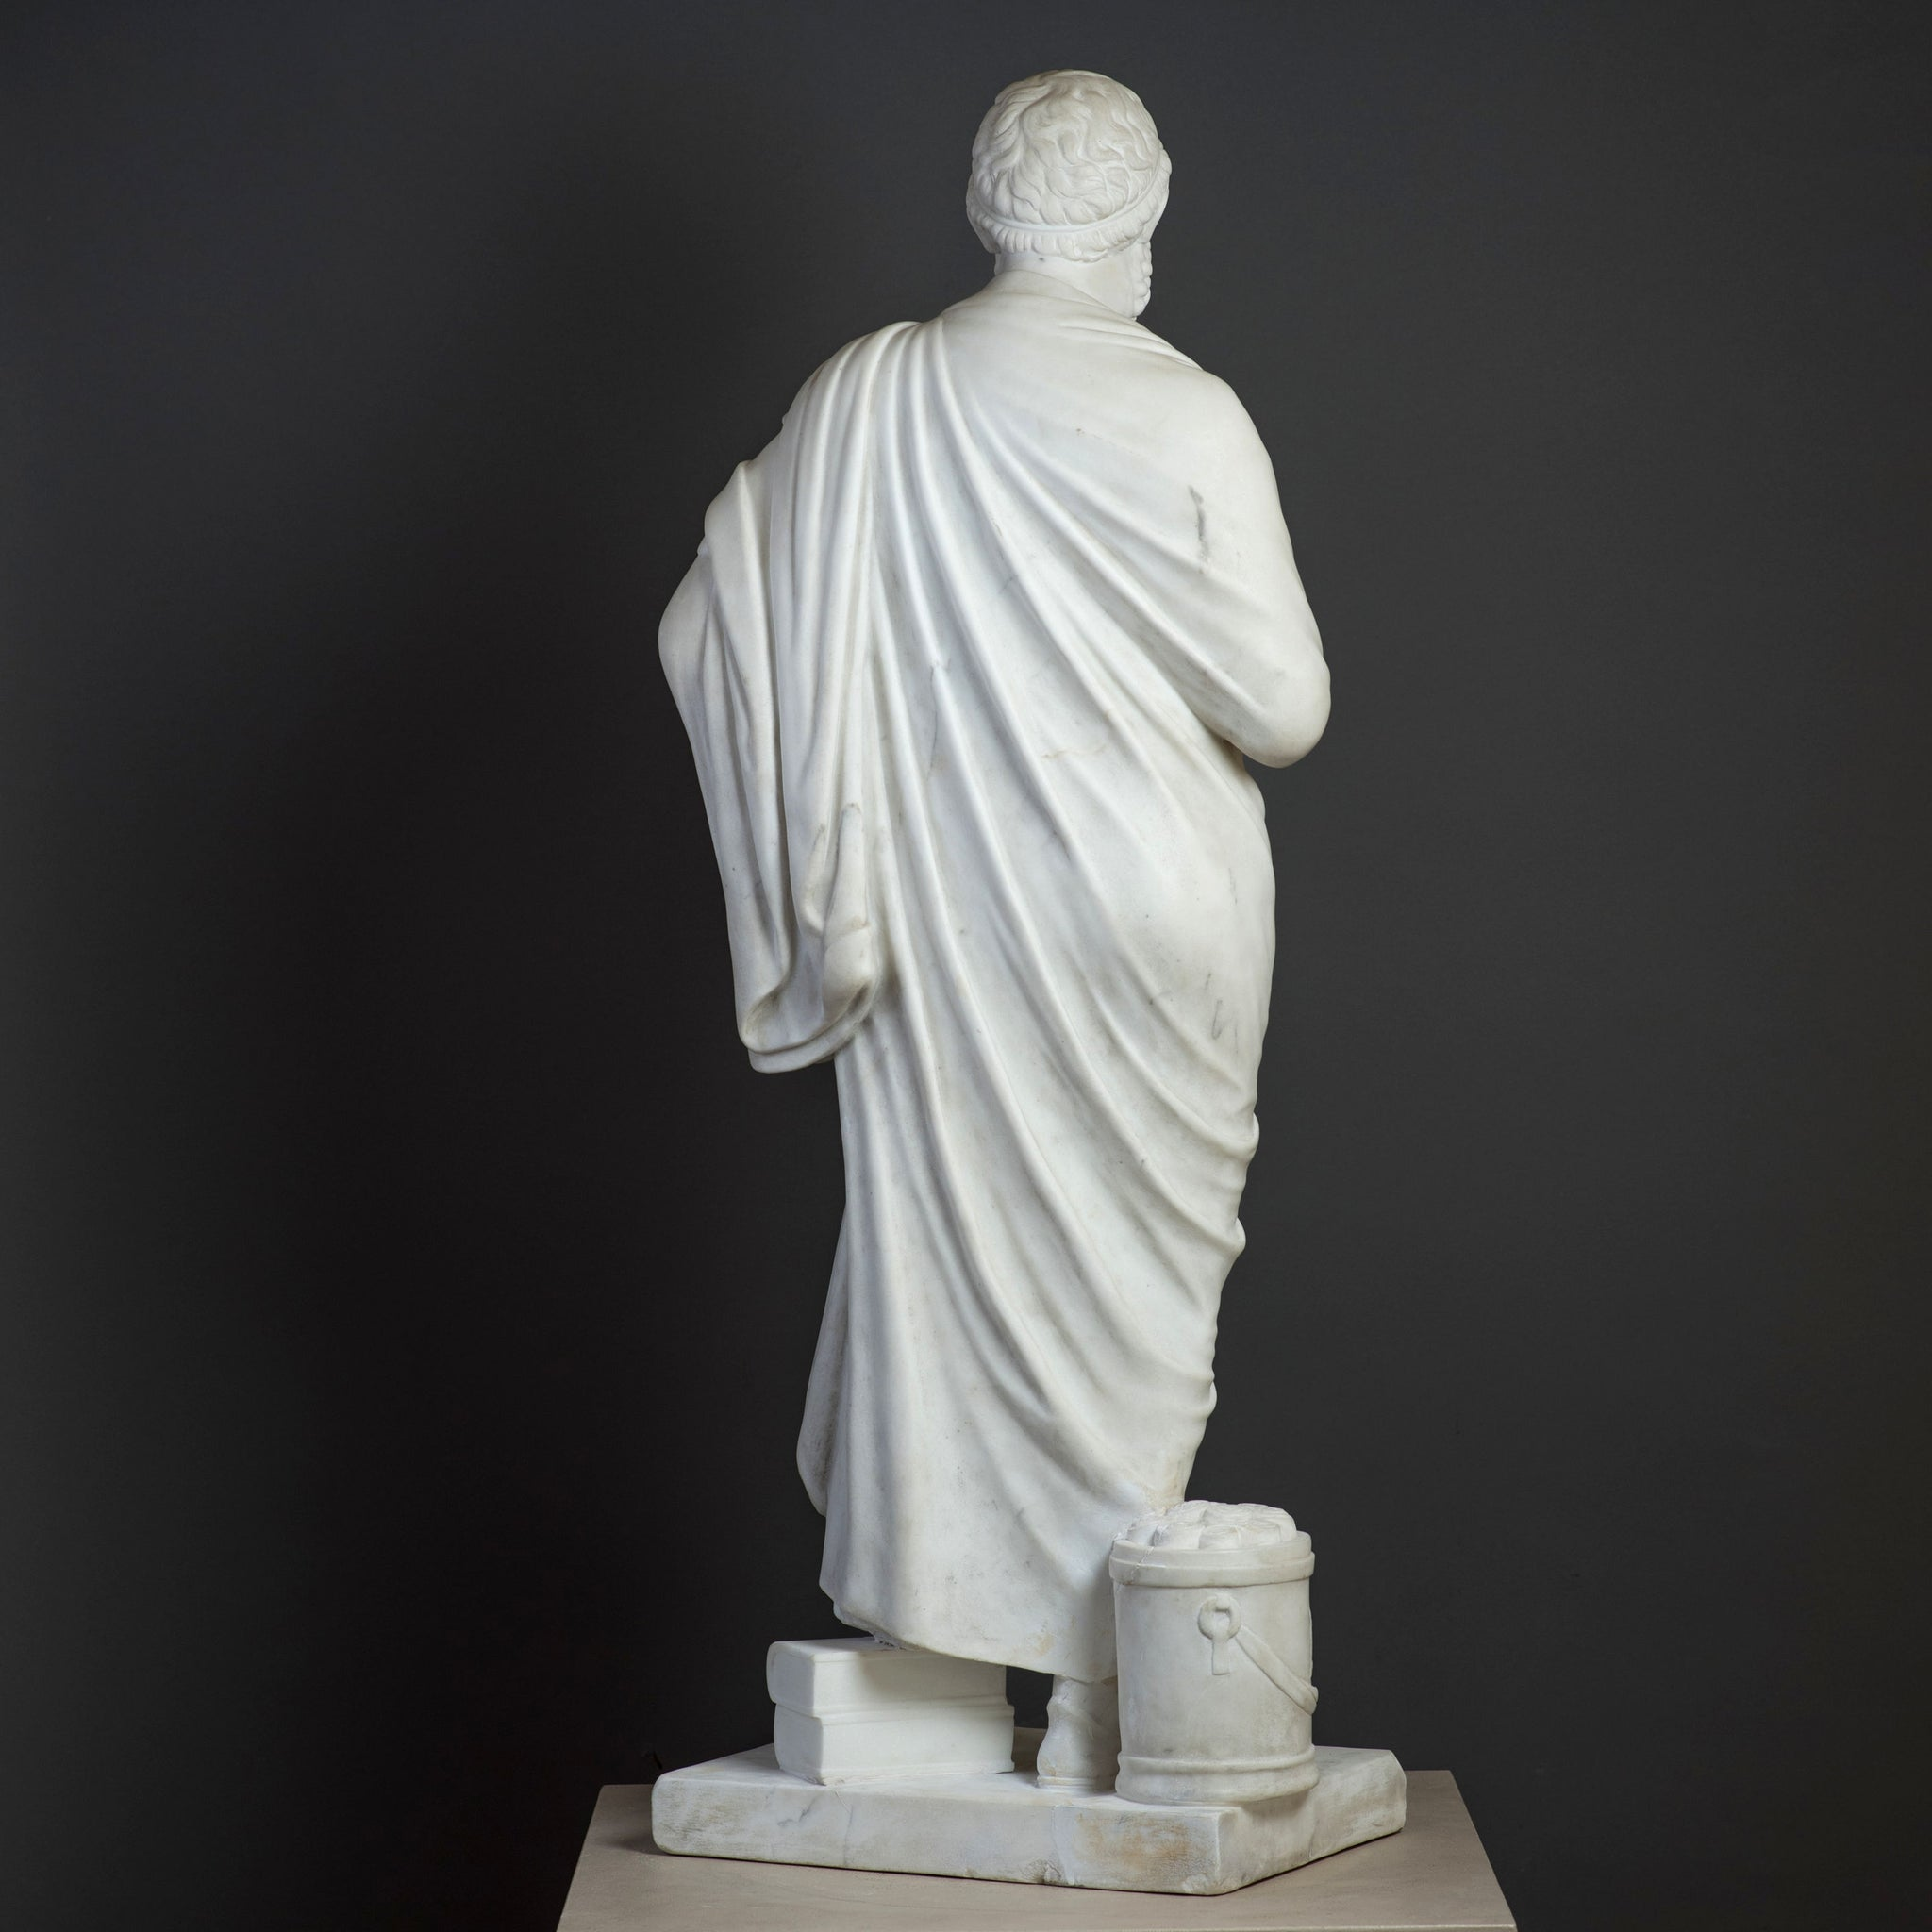 Carara Marble Sculpture of Sophocles